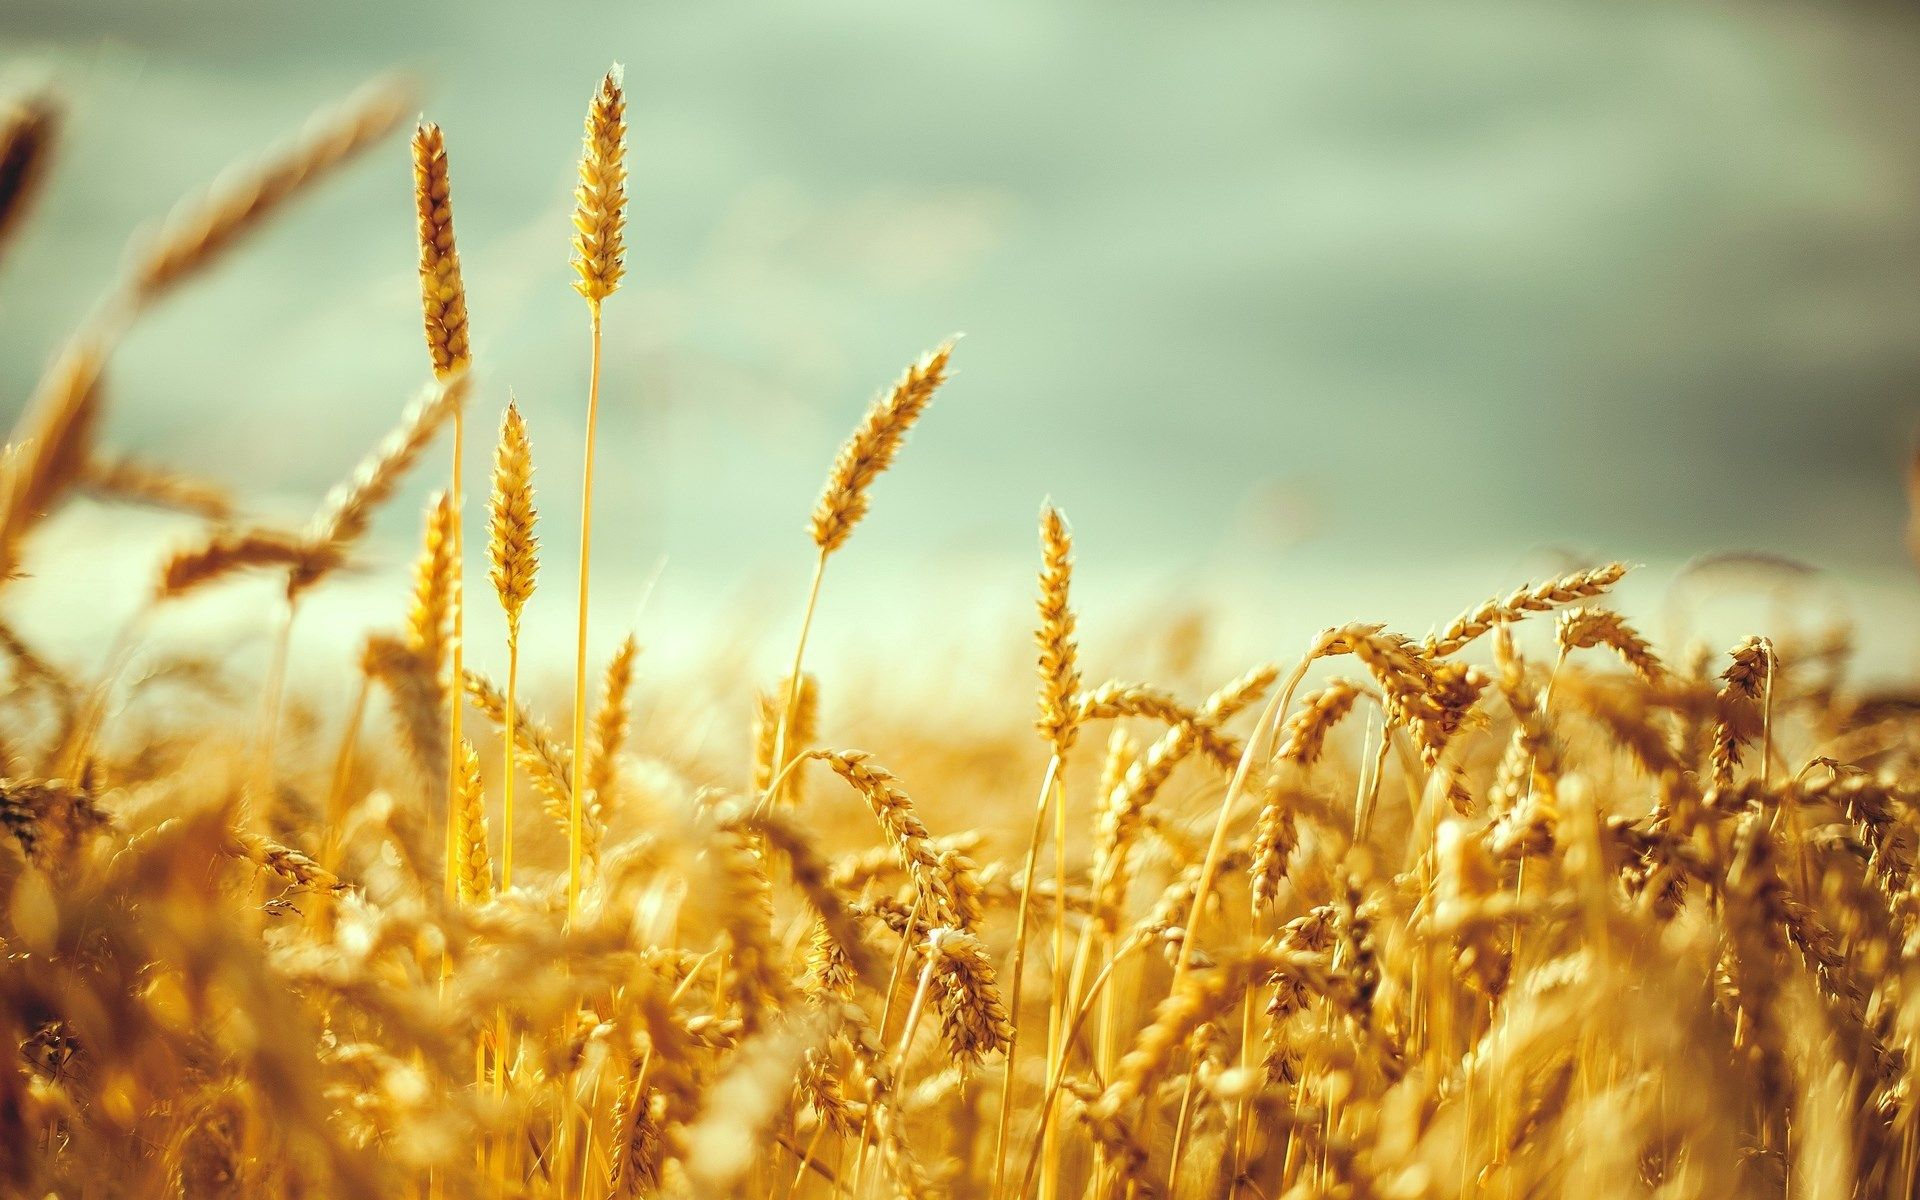 Wheat Wave Analysis – 31 August, 2020